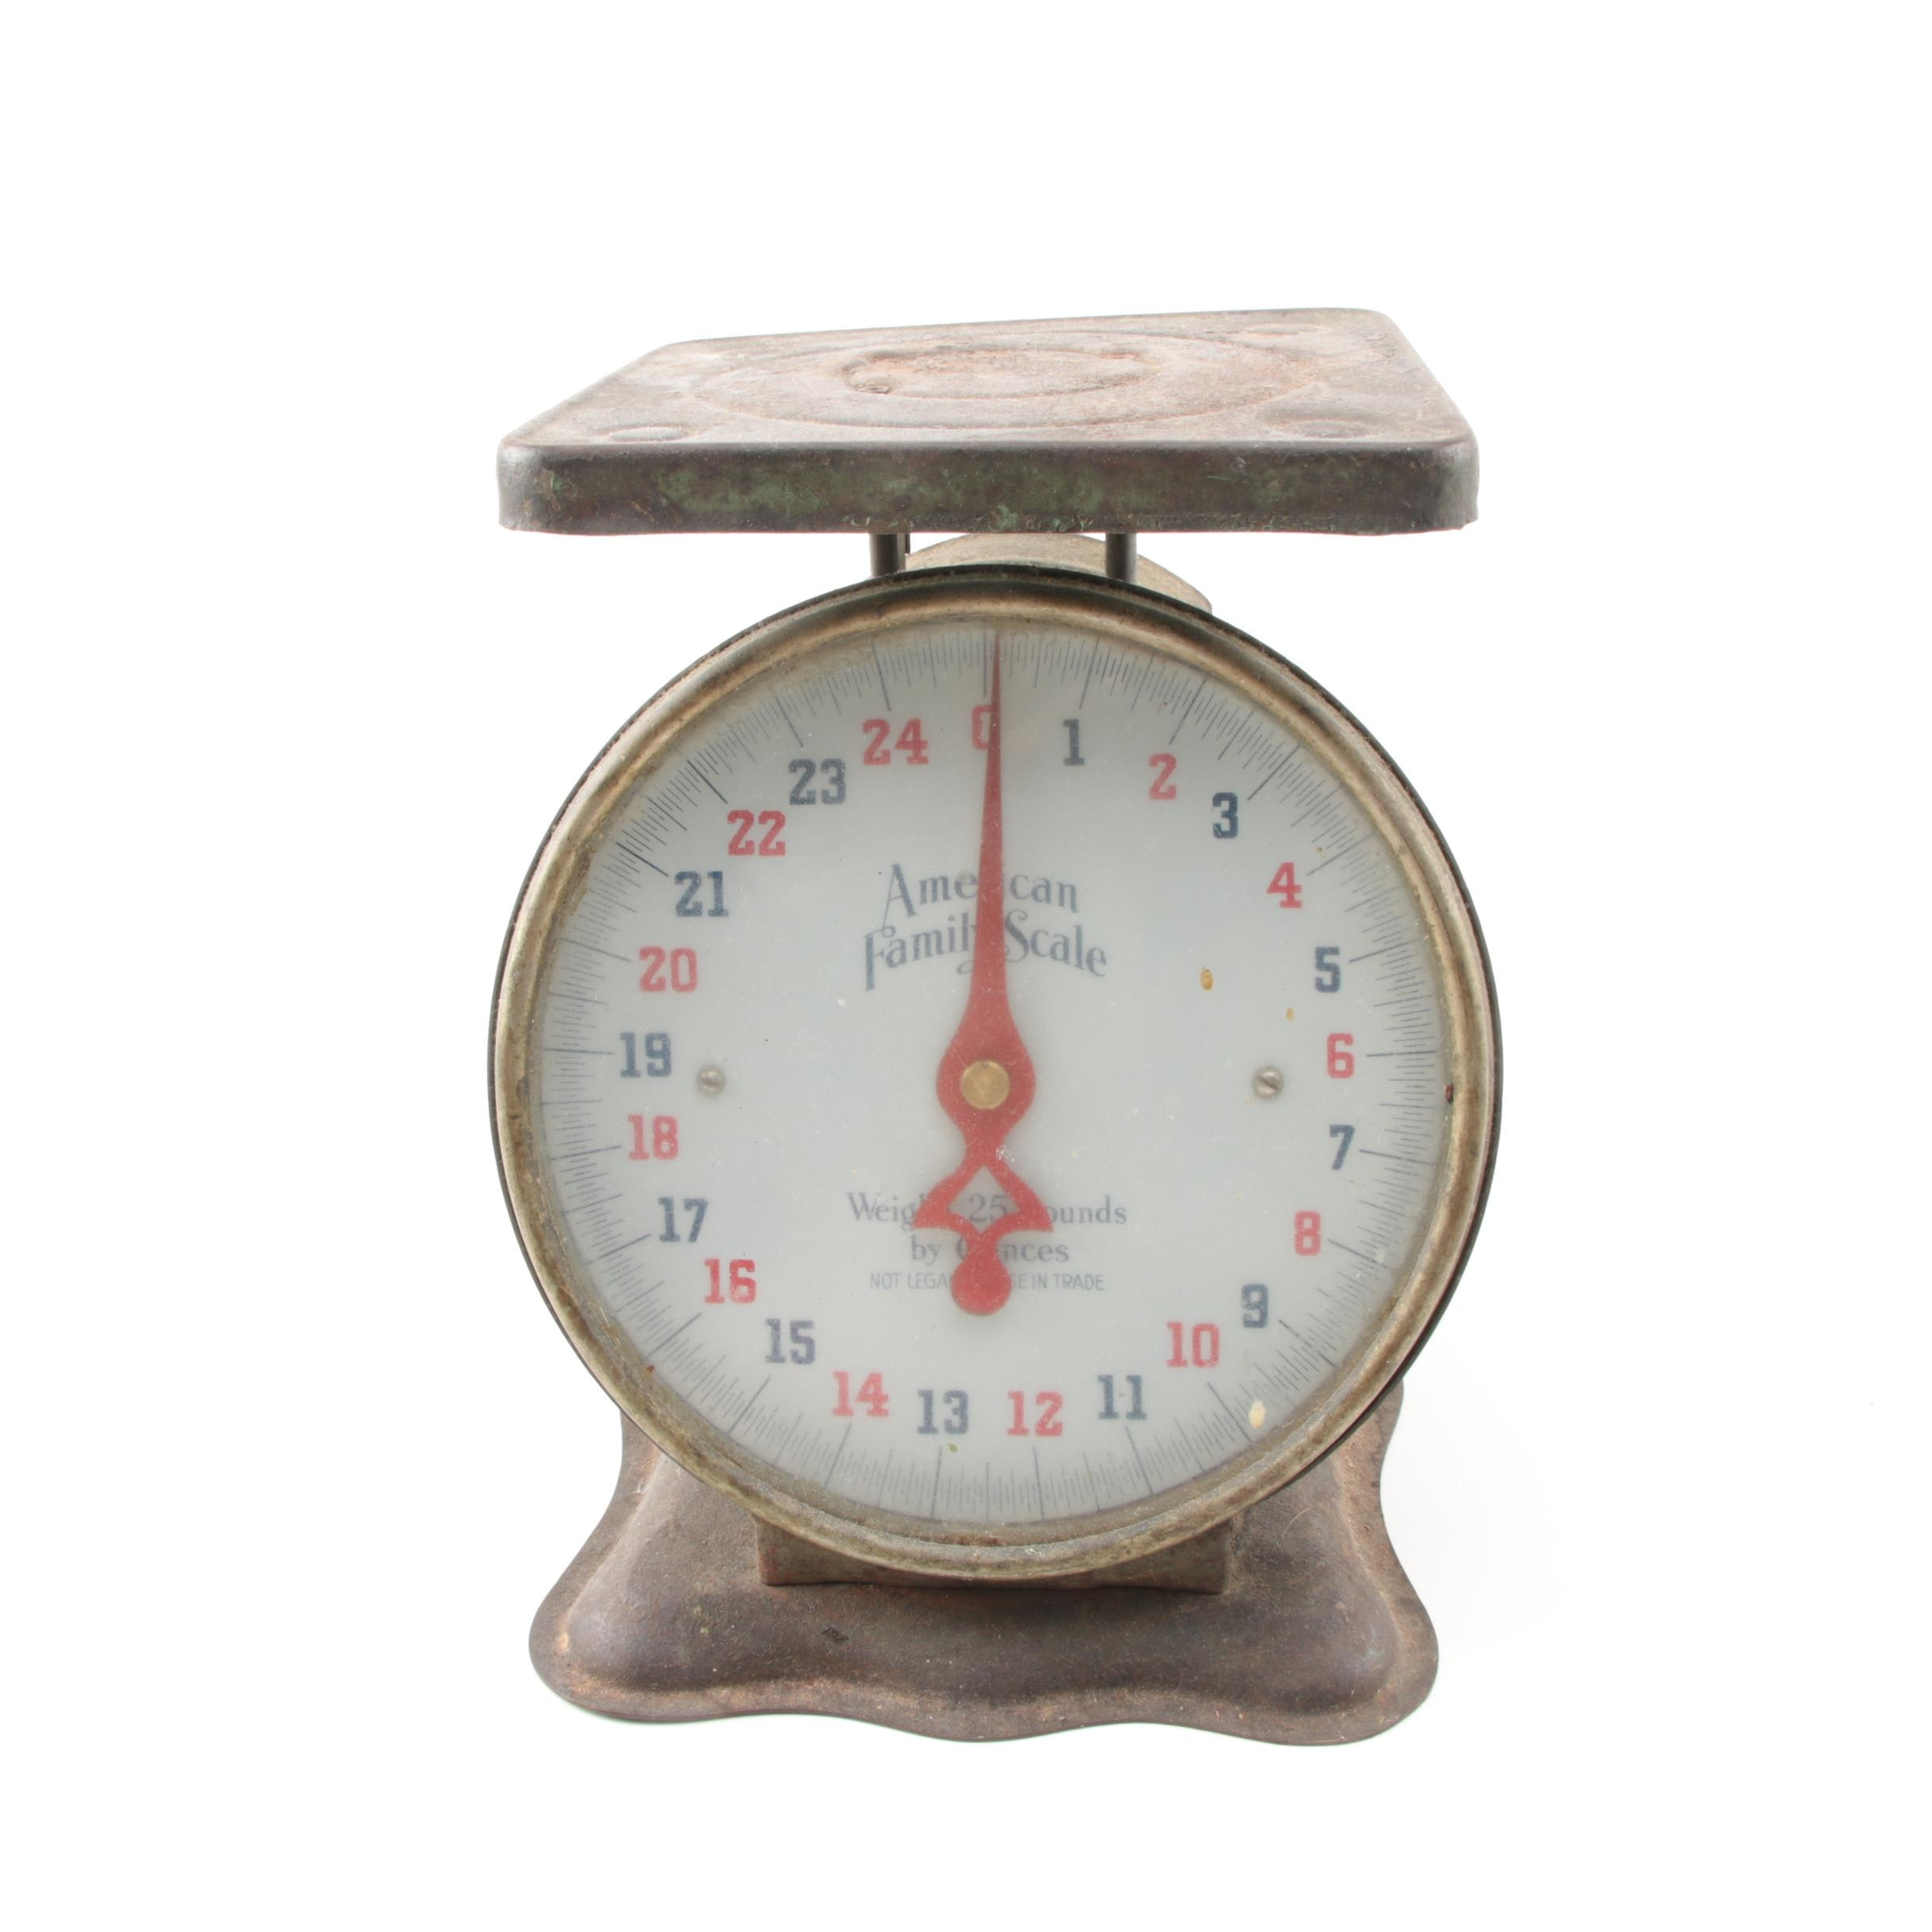 Vintage 'American Family Scale' Kitchen Scale